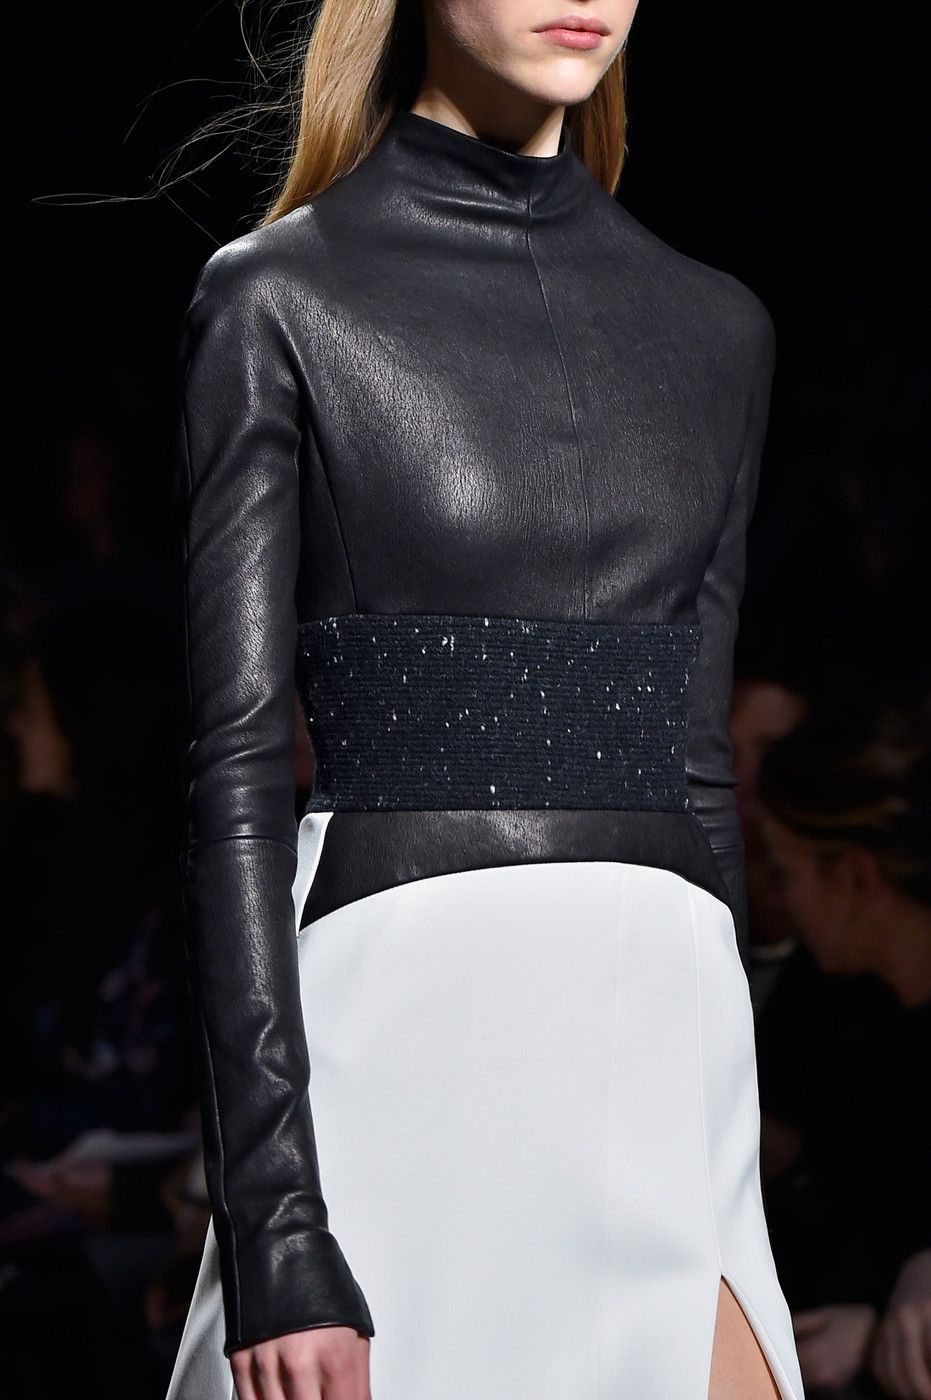 Monochorme dress with leather top & textured panel; fashion details // Narciso Rodriguez Fall 2015